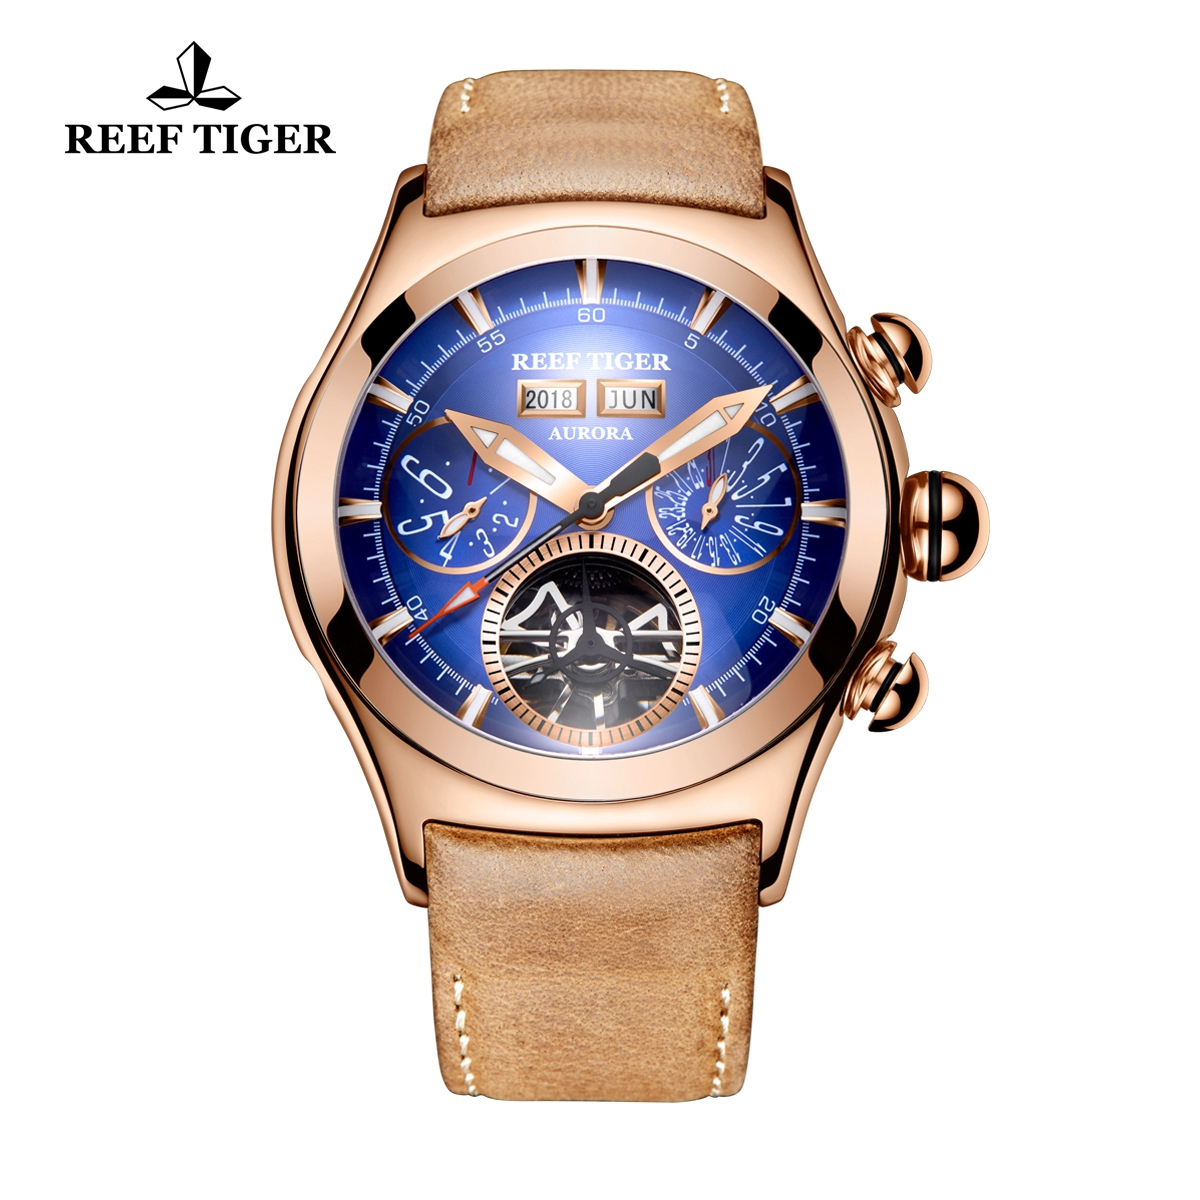 Reef Tiger Air Bubble II Men's Casual Watches Automatic Watch Rose Gold Case Leather Strap RGA7503-PLS